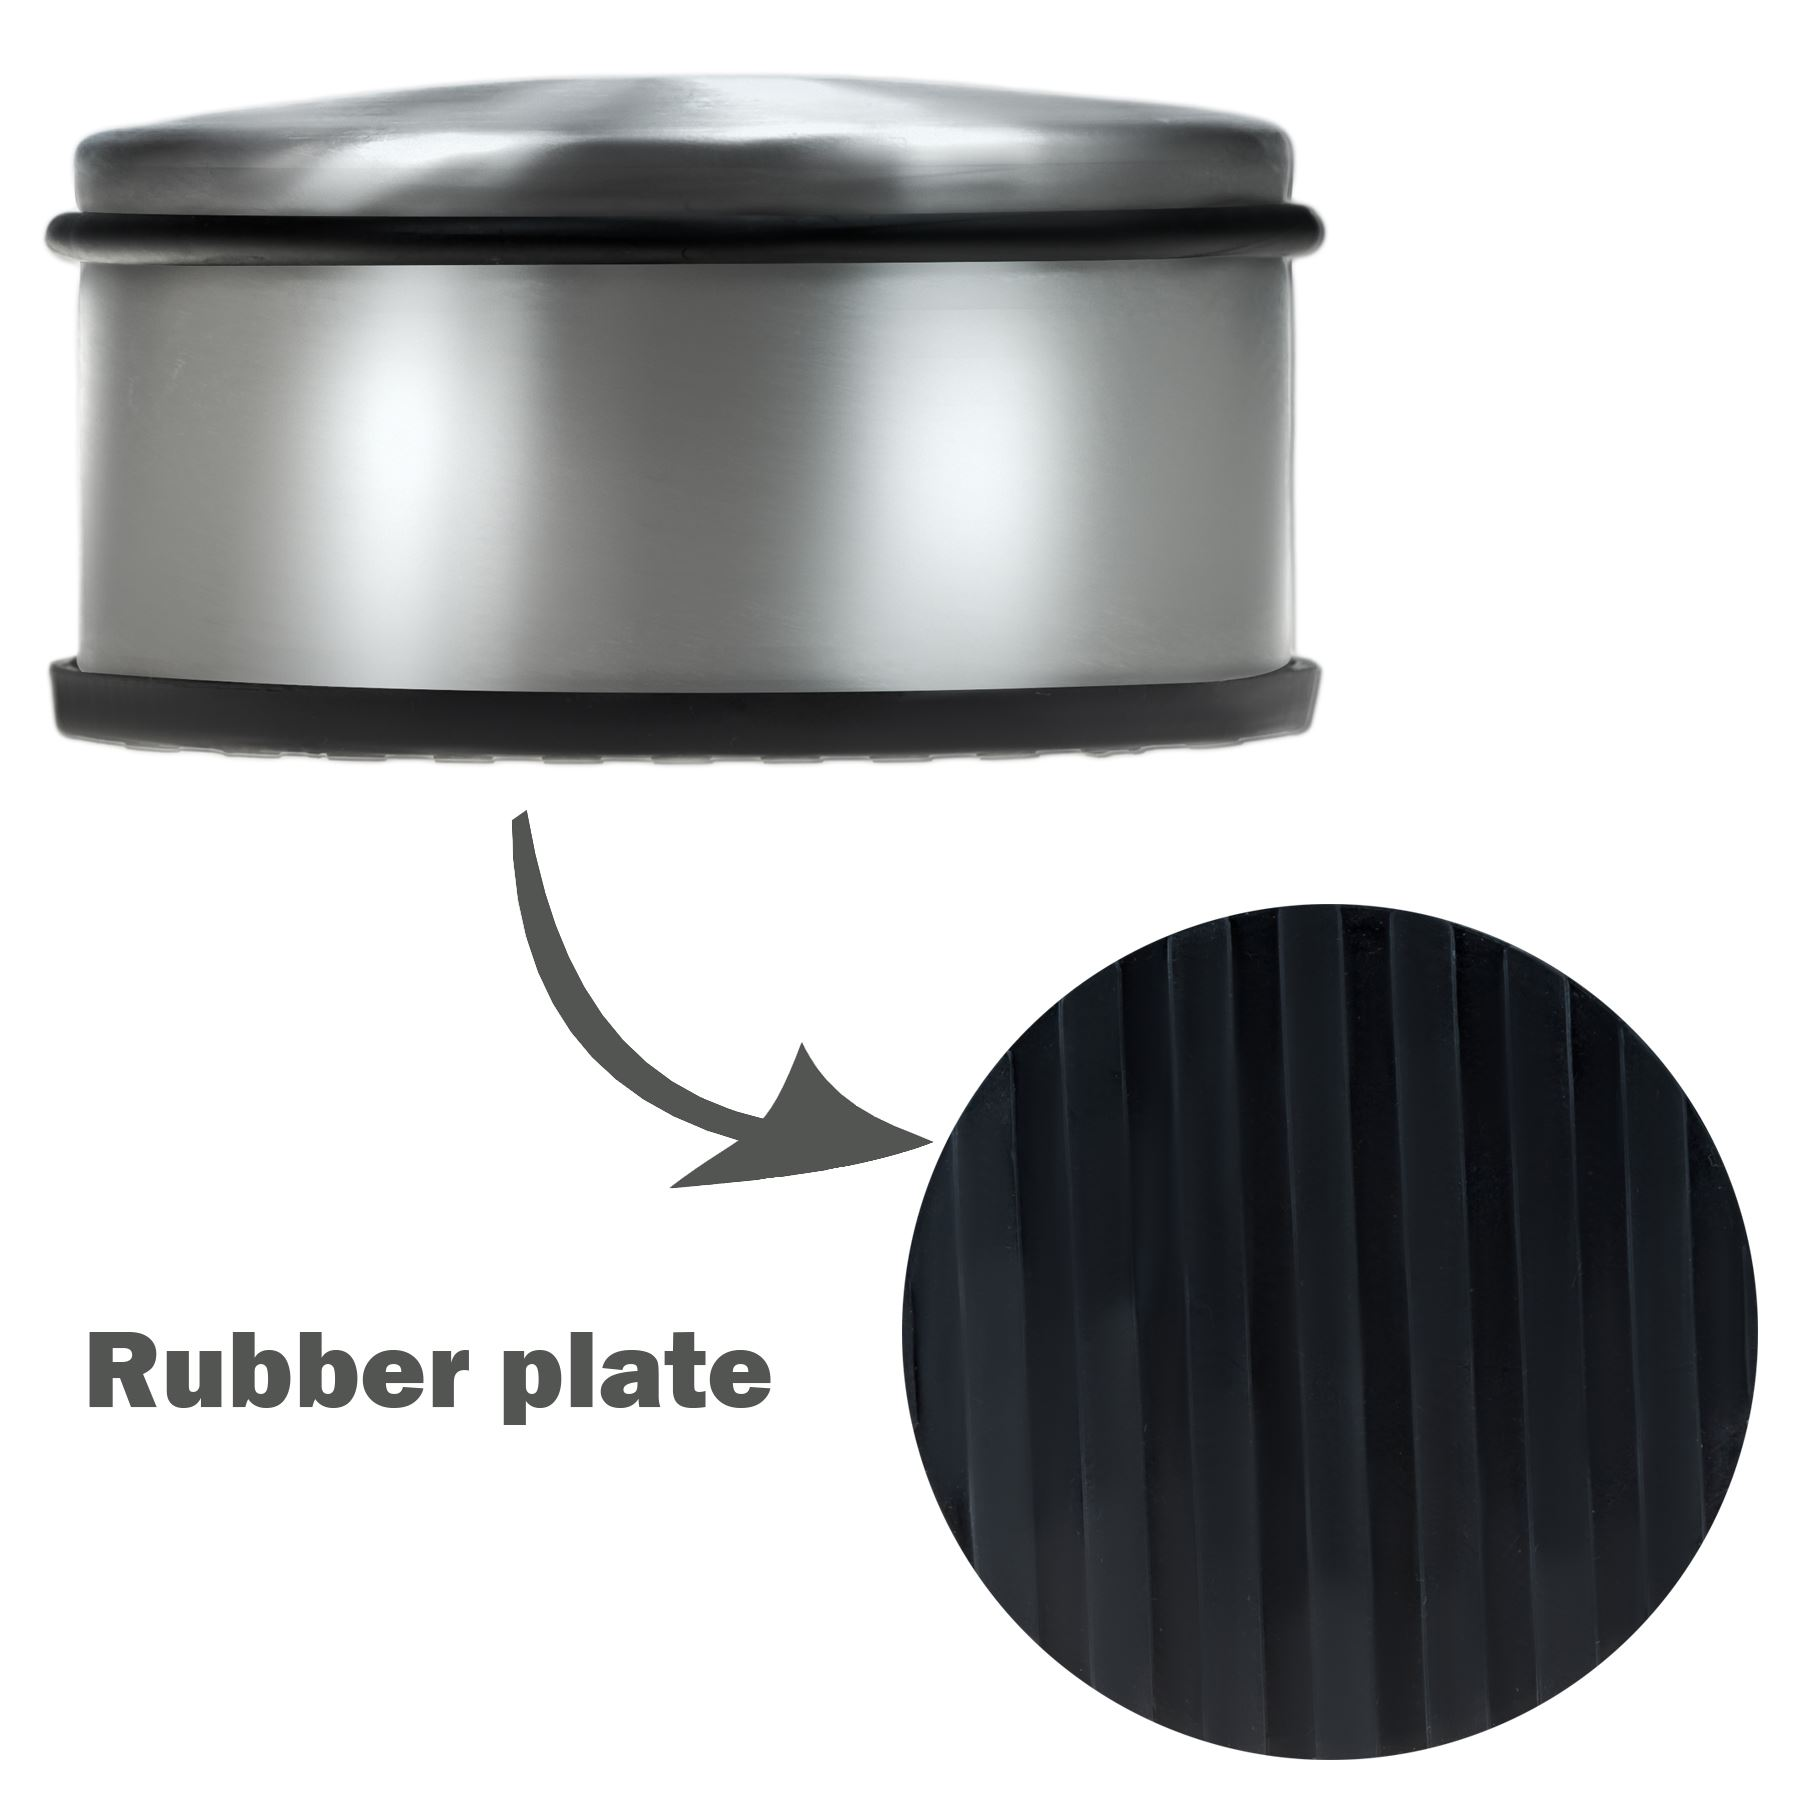 Heavy Weight Door Stop Details About Round Chrome Metal Door Stopper Stop Rubber Floor Protector Heavy Weight Duty